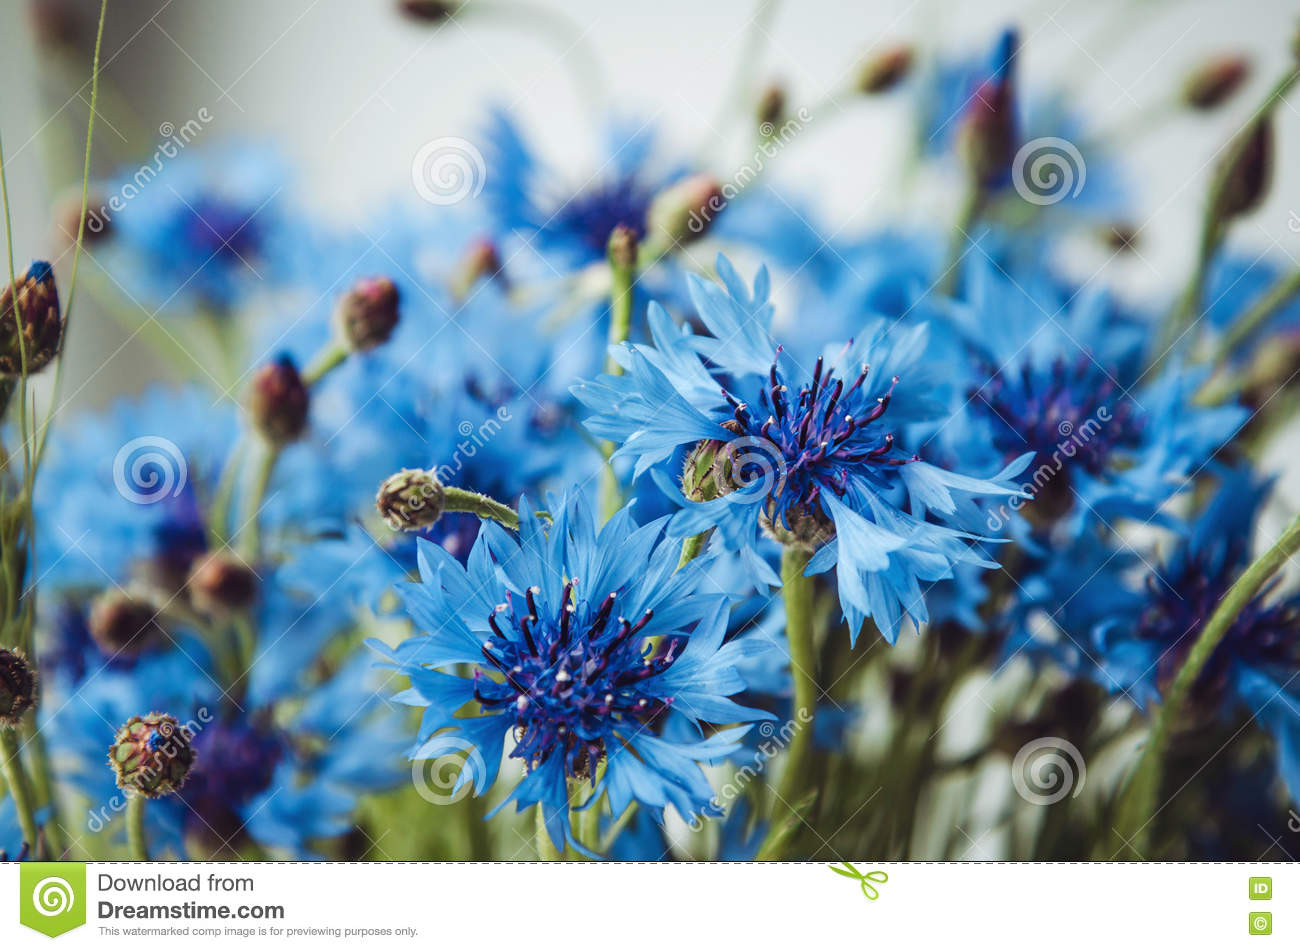 Summer wallpaper of blue cornflower, green grass on a white background, rural field. Blossom floral abstract bokeh and